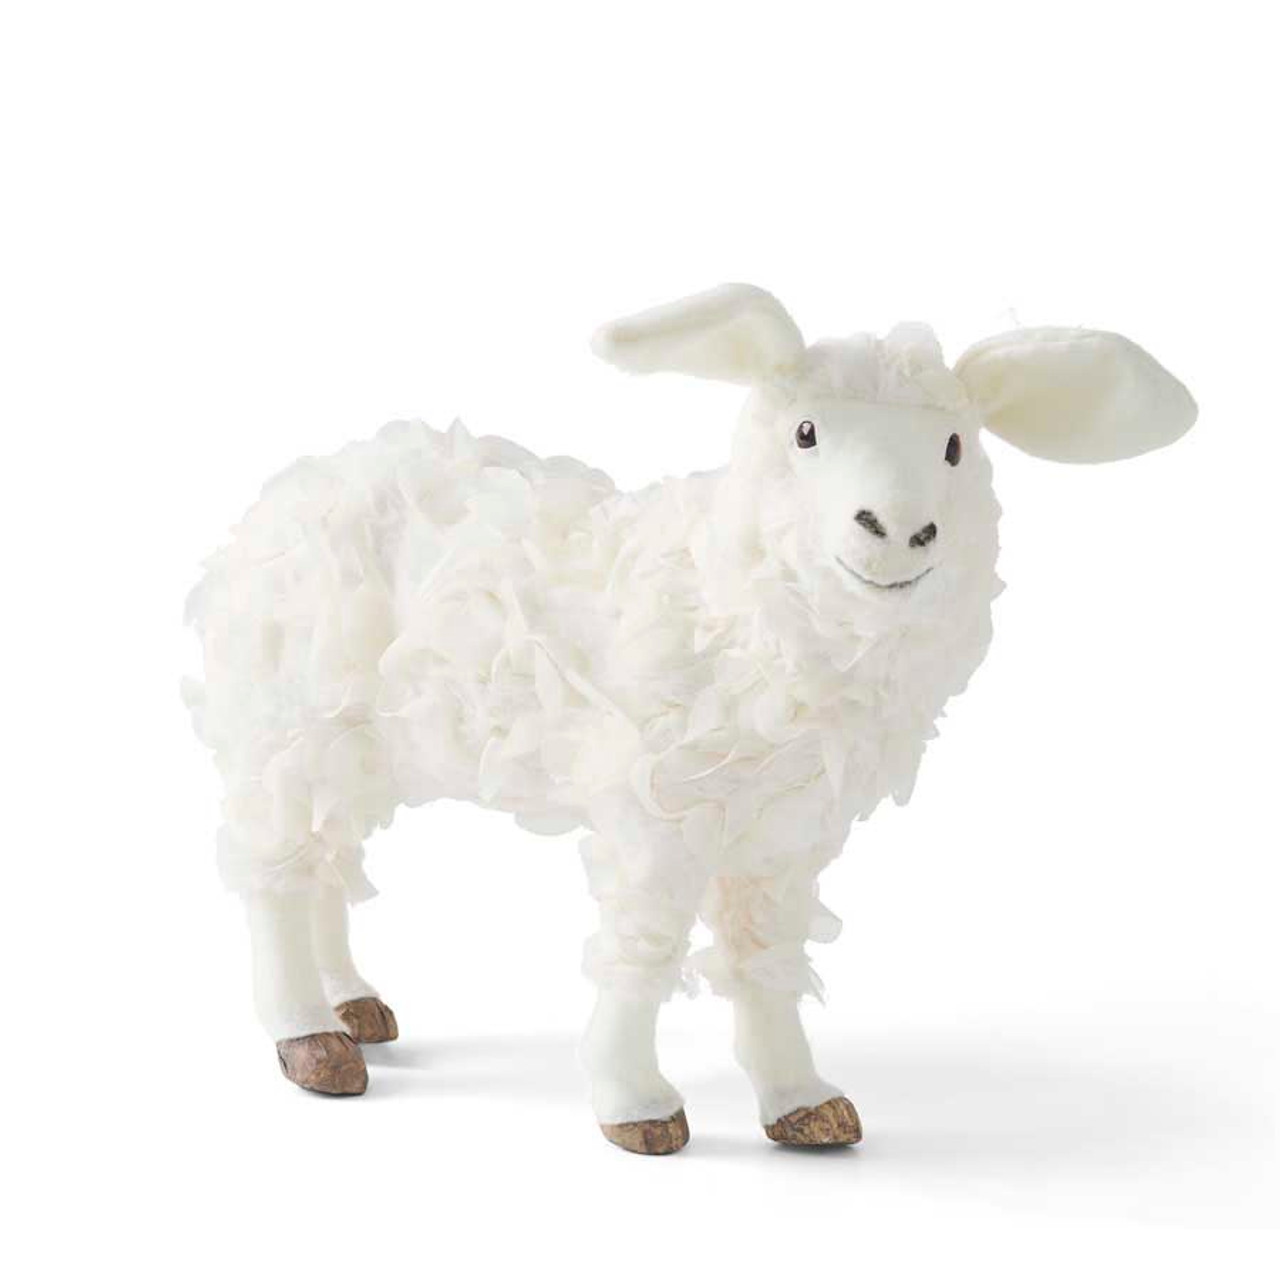 Soft & Fluffy Free-Standing Sheep. Could be used as kids room decor or seasonal decor. Available in 2 sizes.